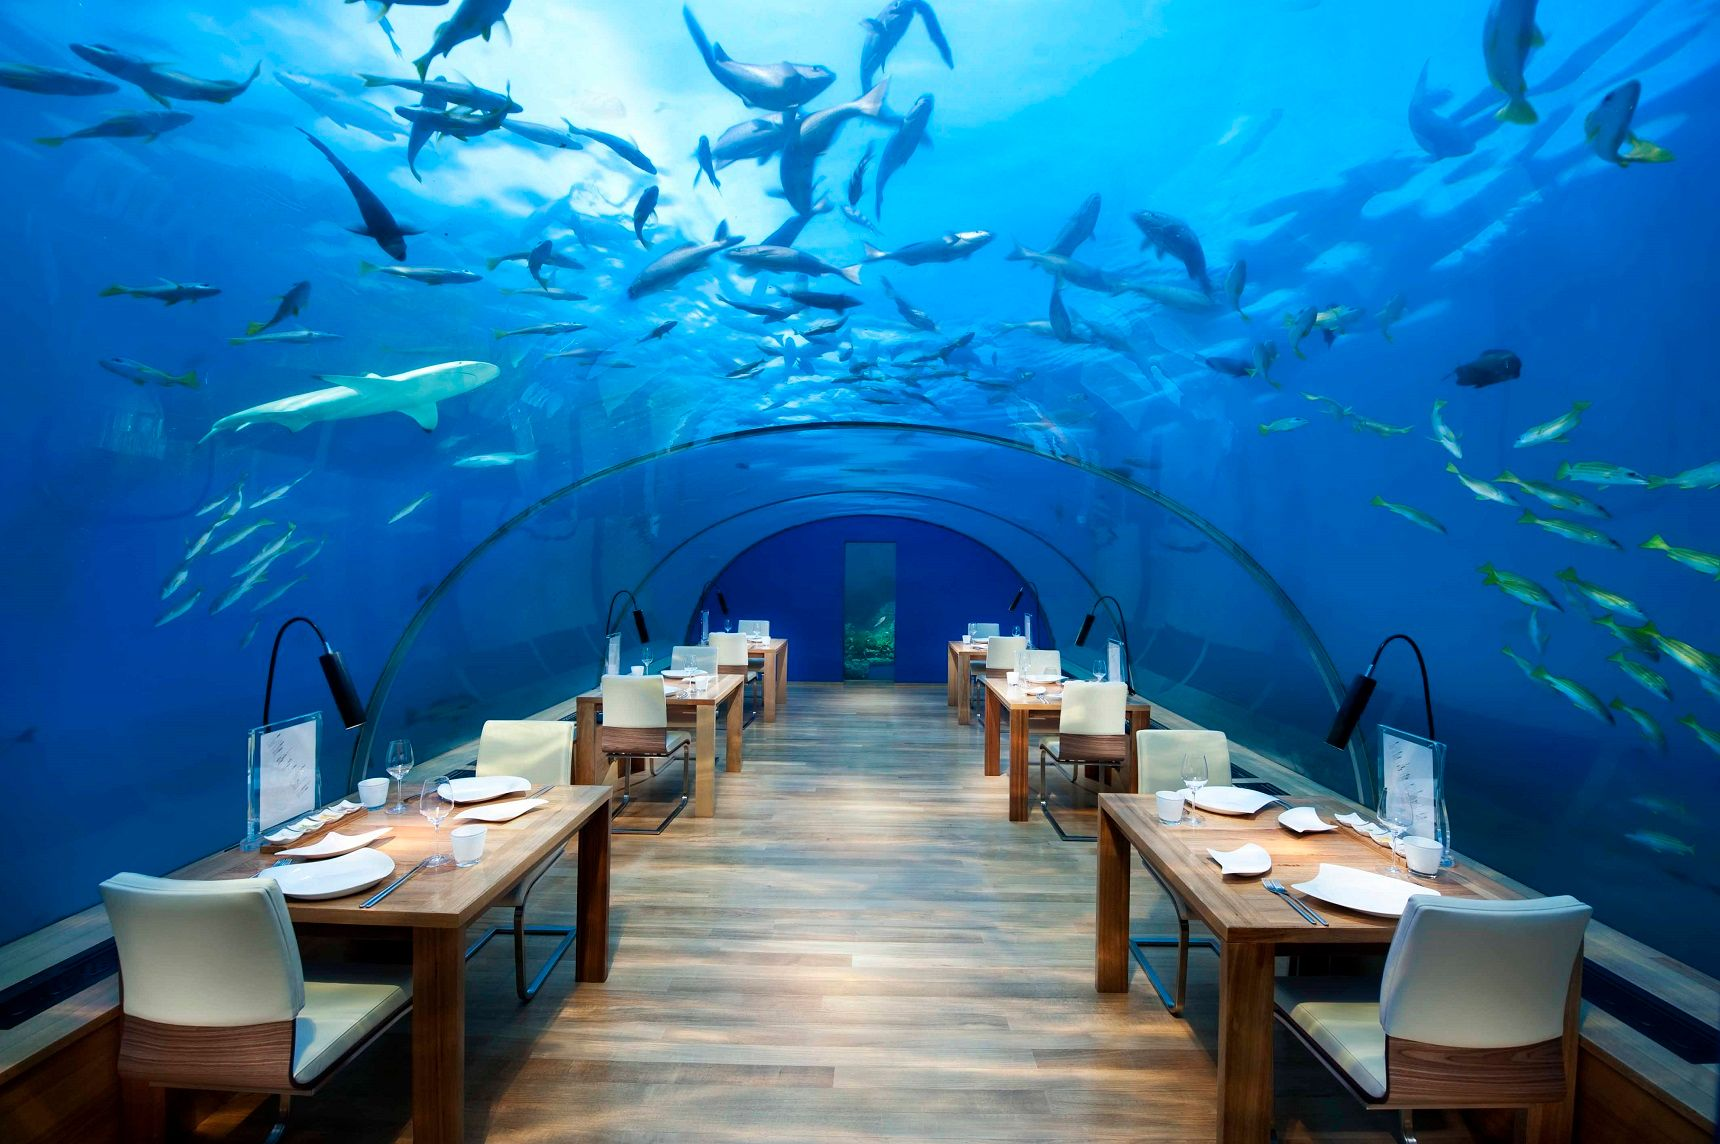 10 Restaurants You Won't Believe Actually Exist